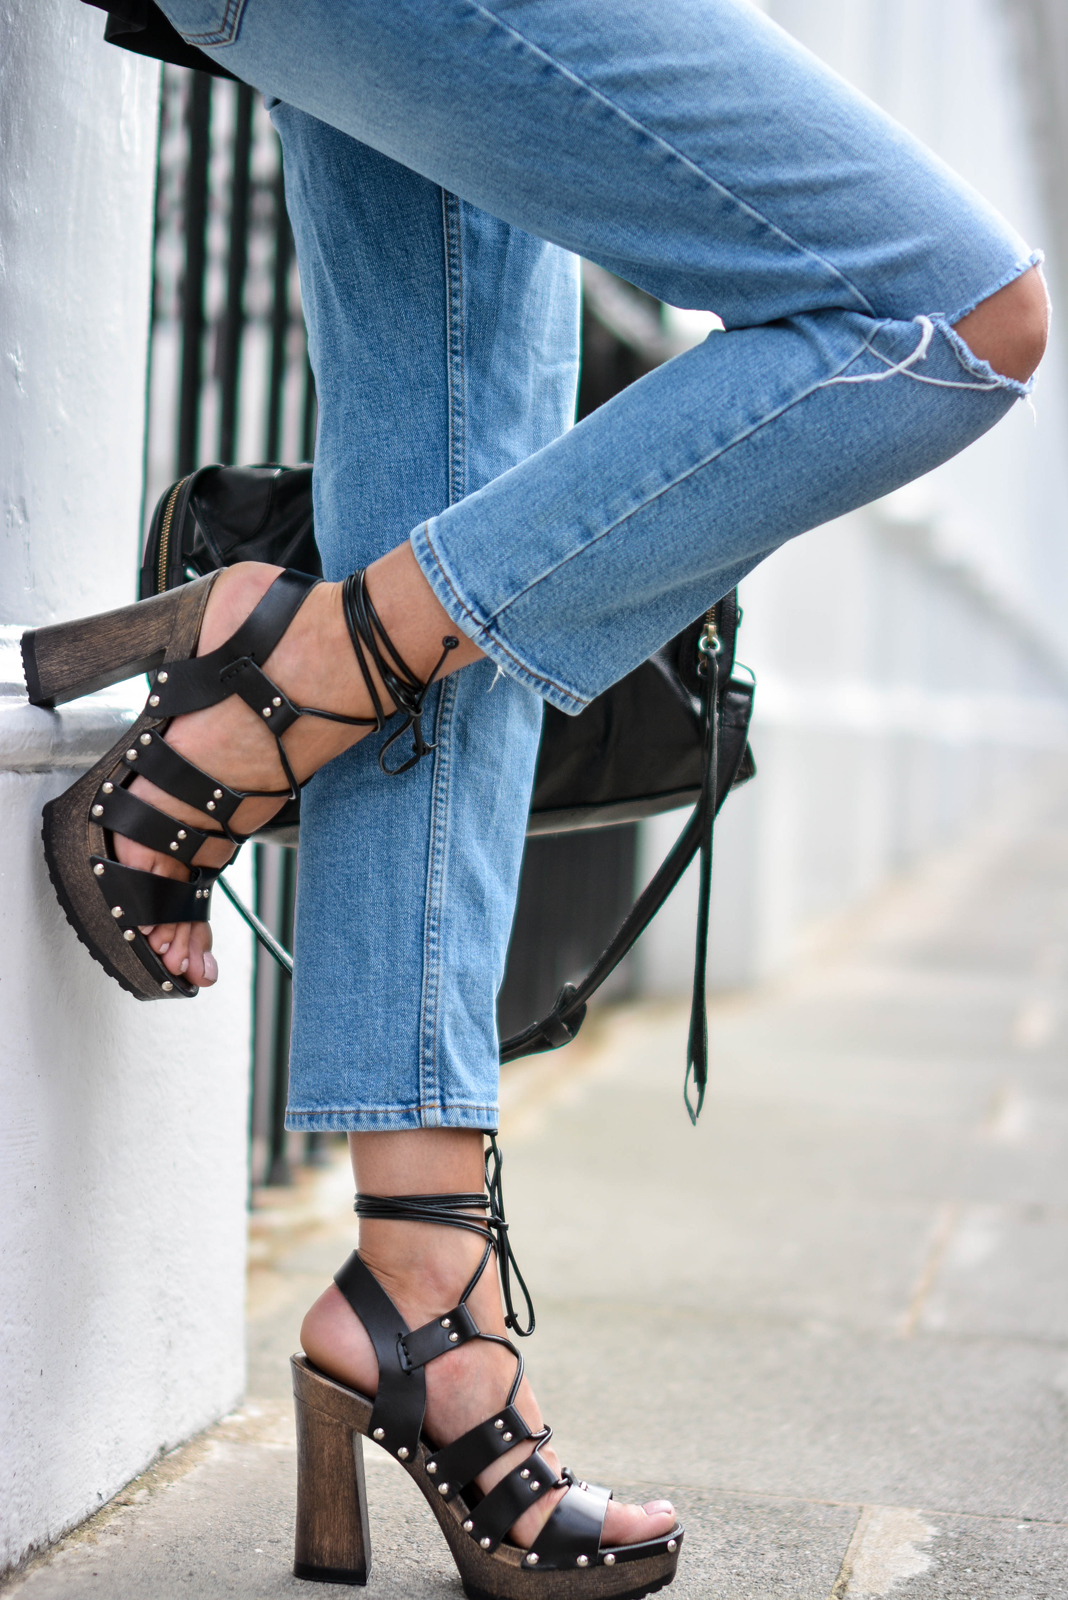 EJSTYLE wears ASOS lace up Turn Back Time wooden platform heels sandals, ripped knee girlfreind jeans